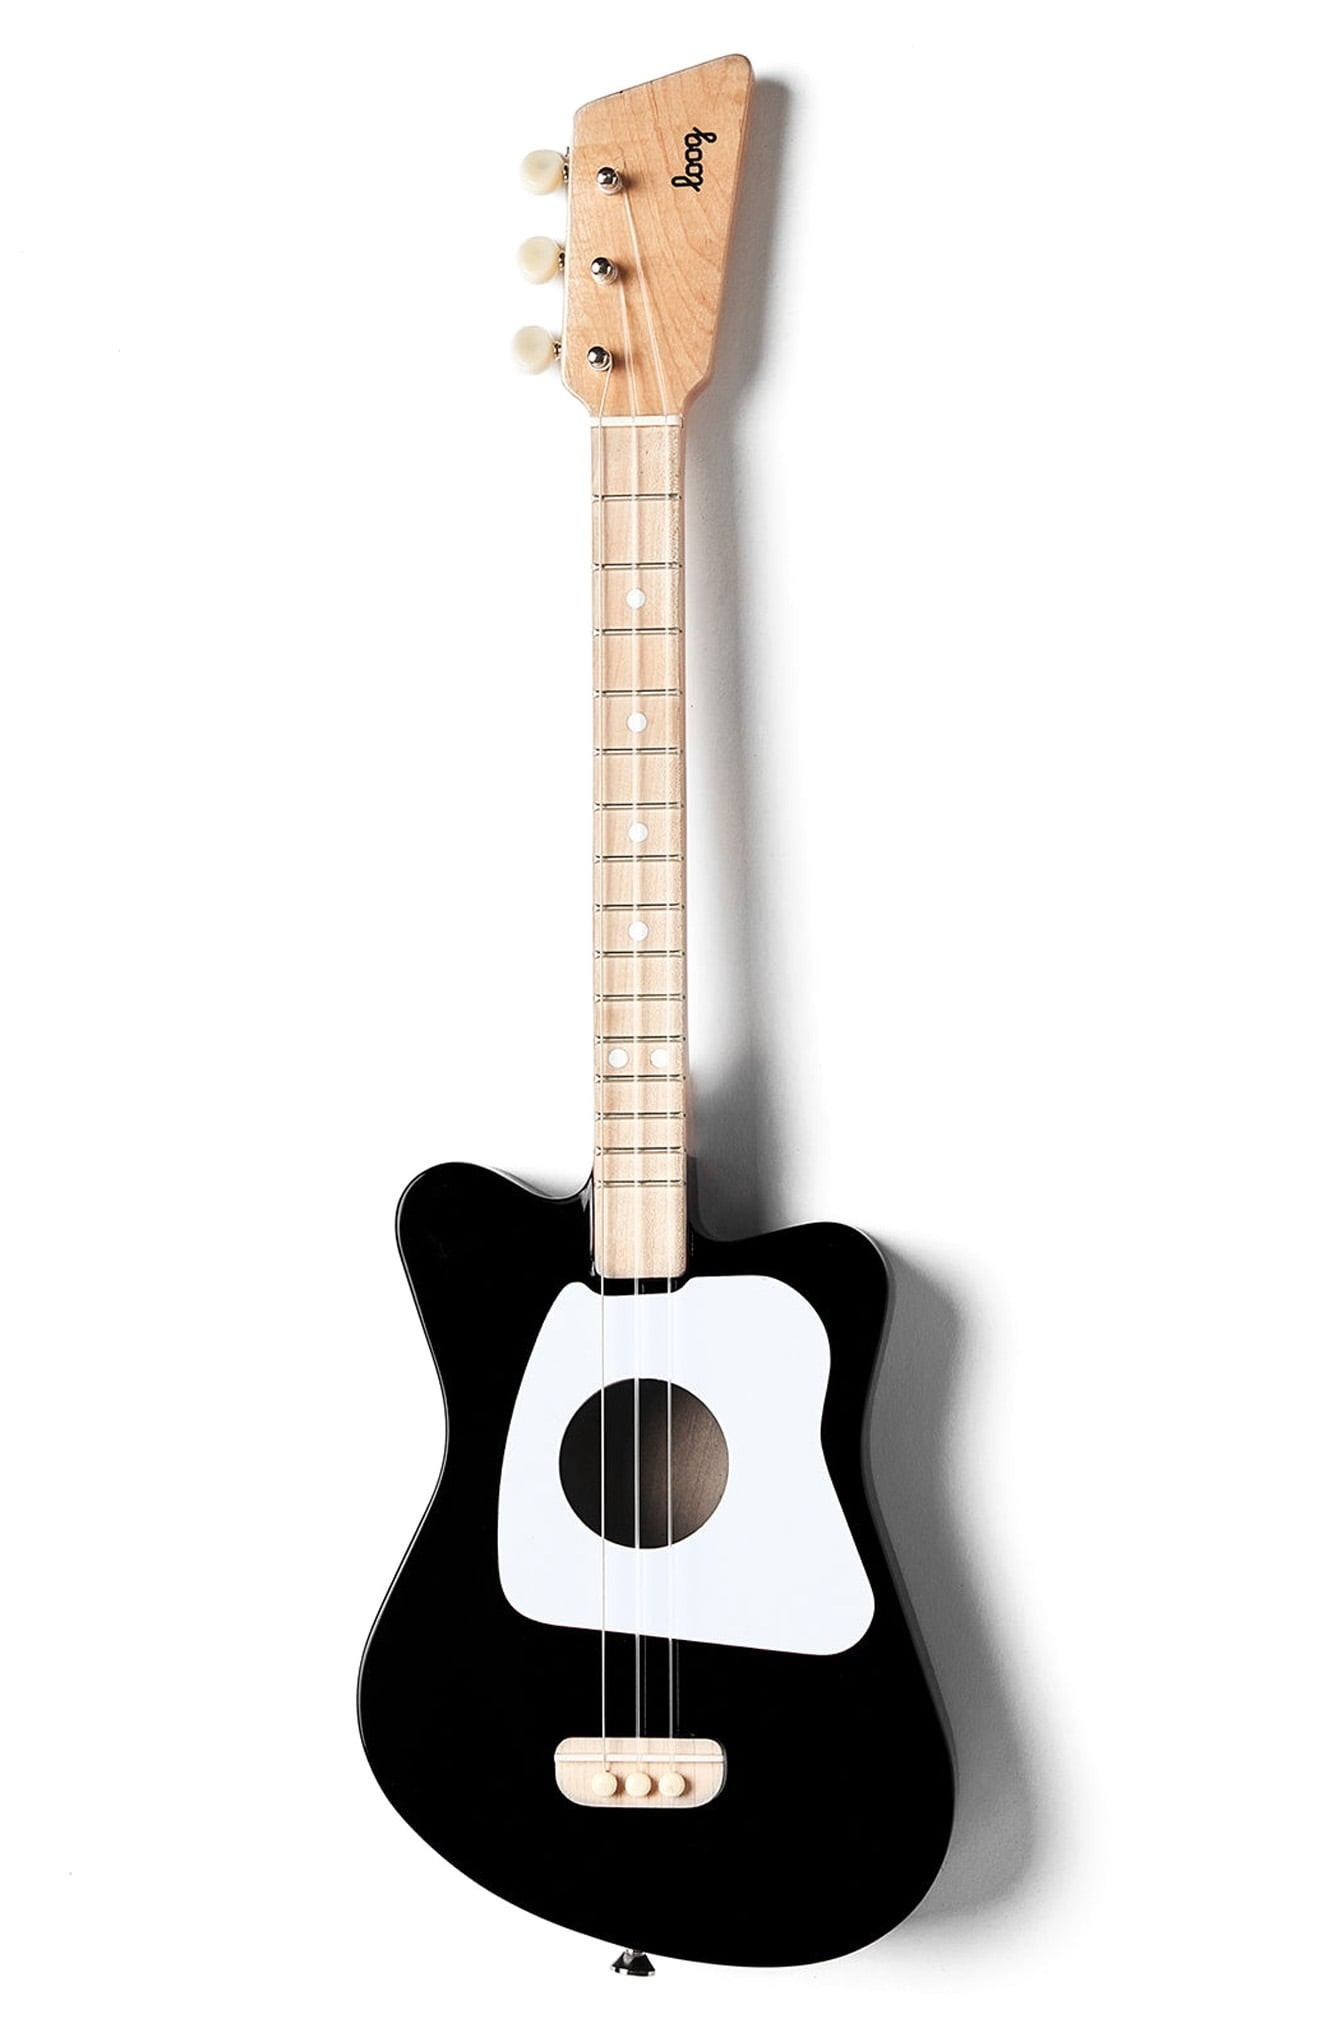 real guitar for kids Guitar Collection Ideas